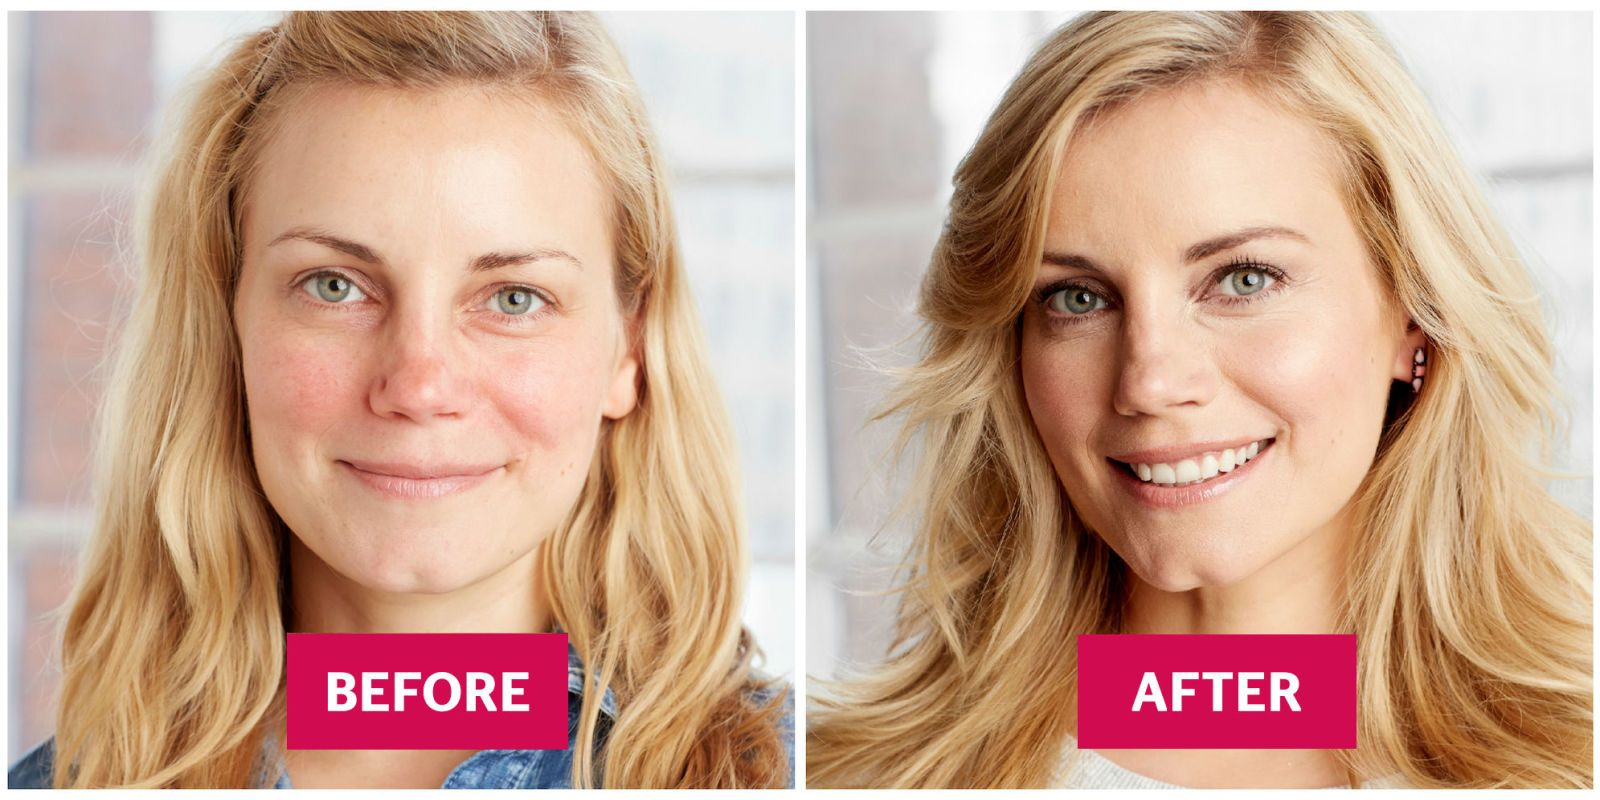 4 Easy Hacks To Fix Your Red Blotchy Skin Red Blotchy Skin Blotchy Skin Red Splotchy Skin